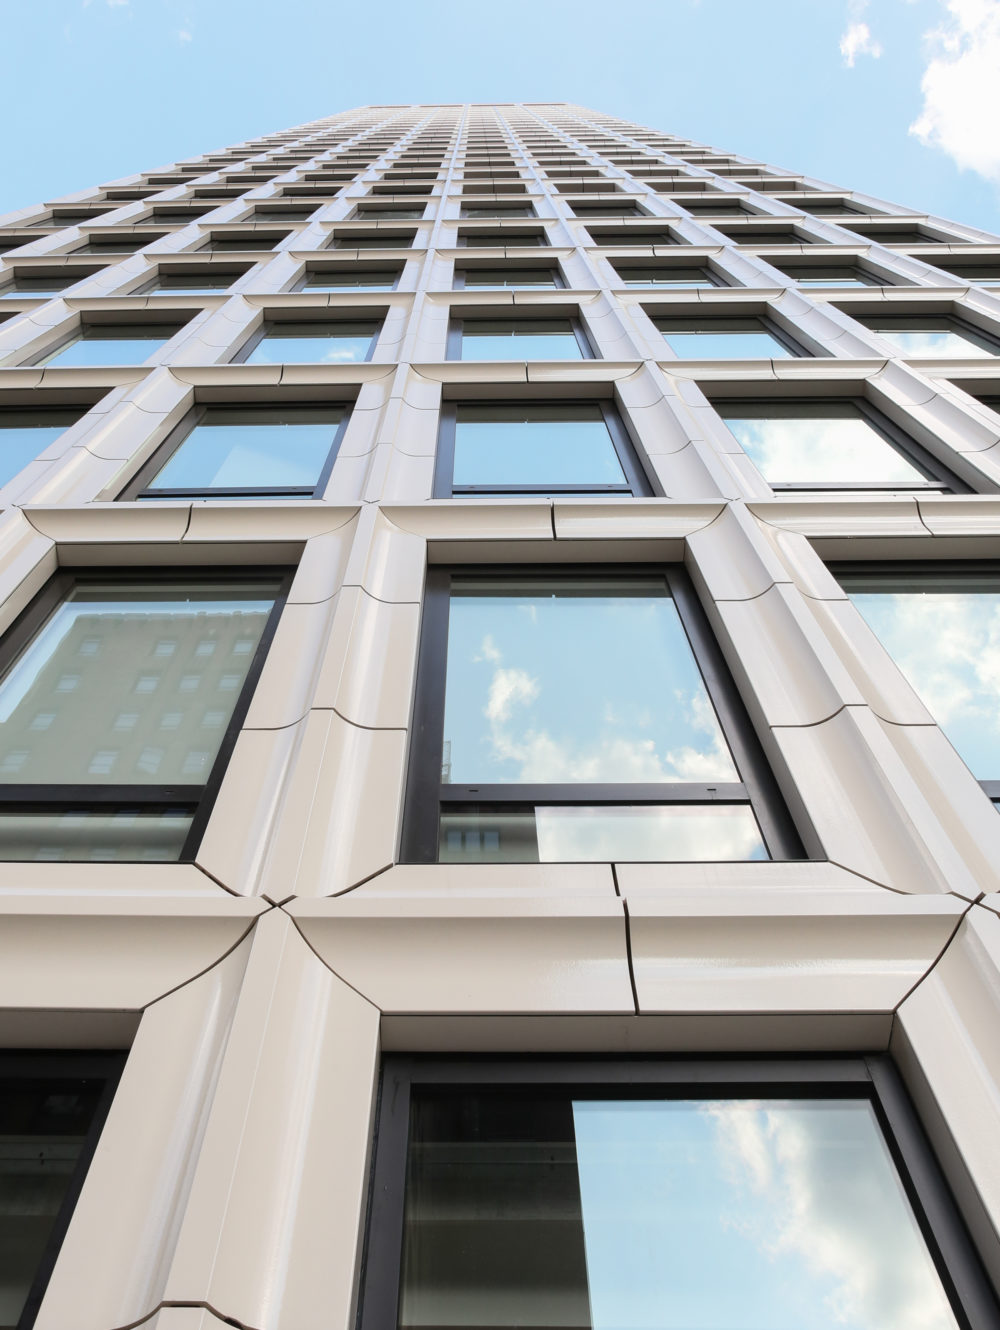 View of the Park Loggia condos exterior in New York. Looking up the side of a high rise with large windows and white stone.